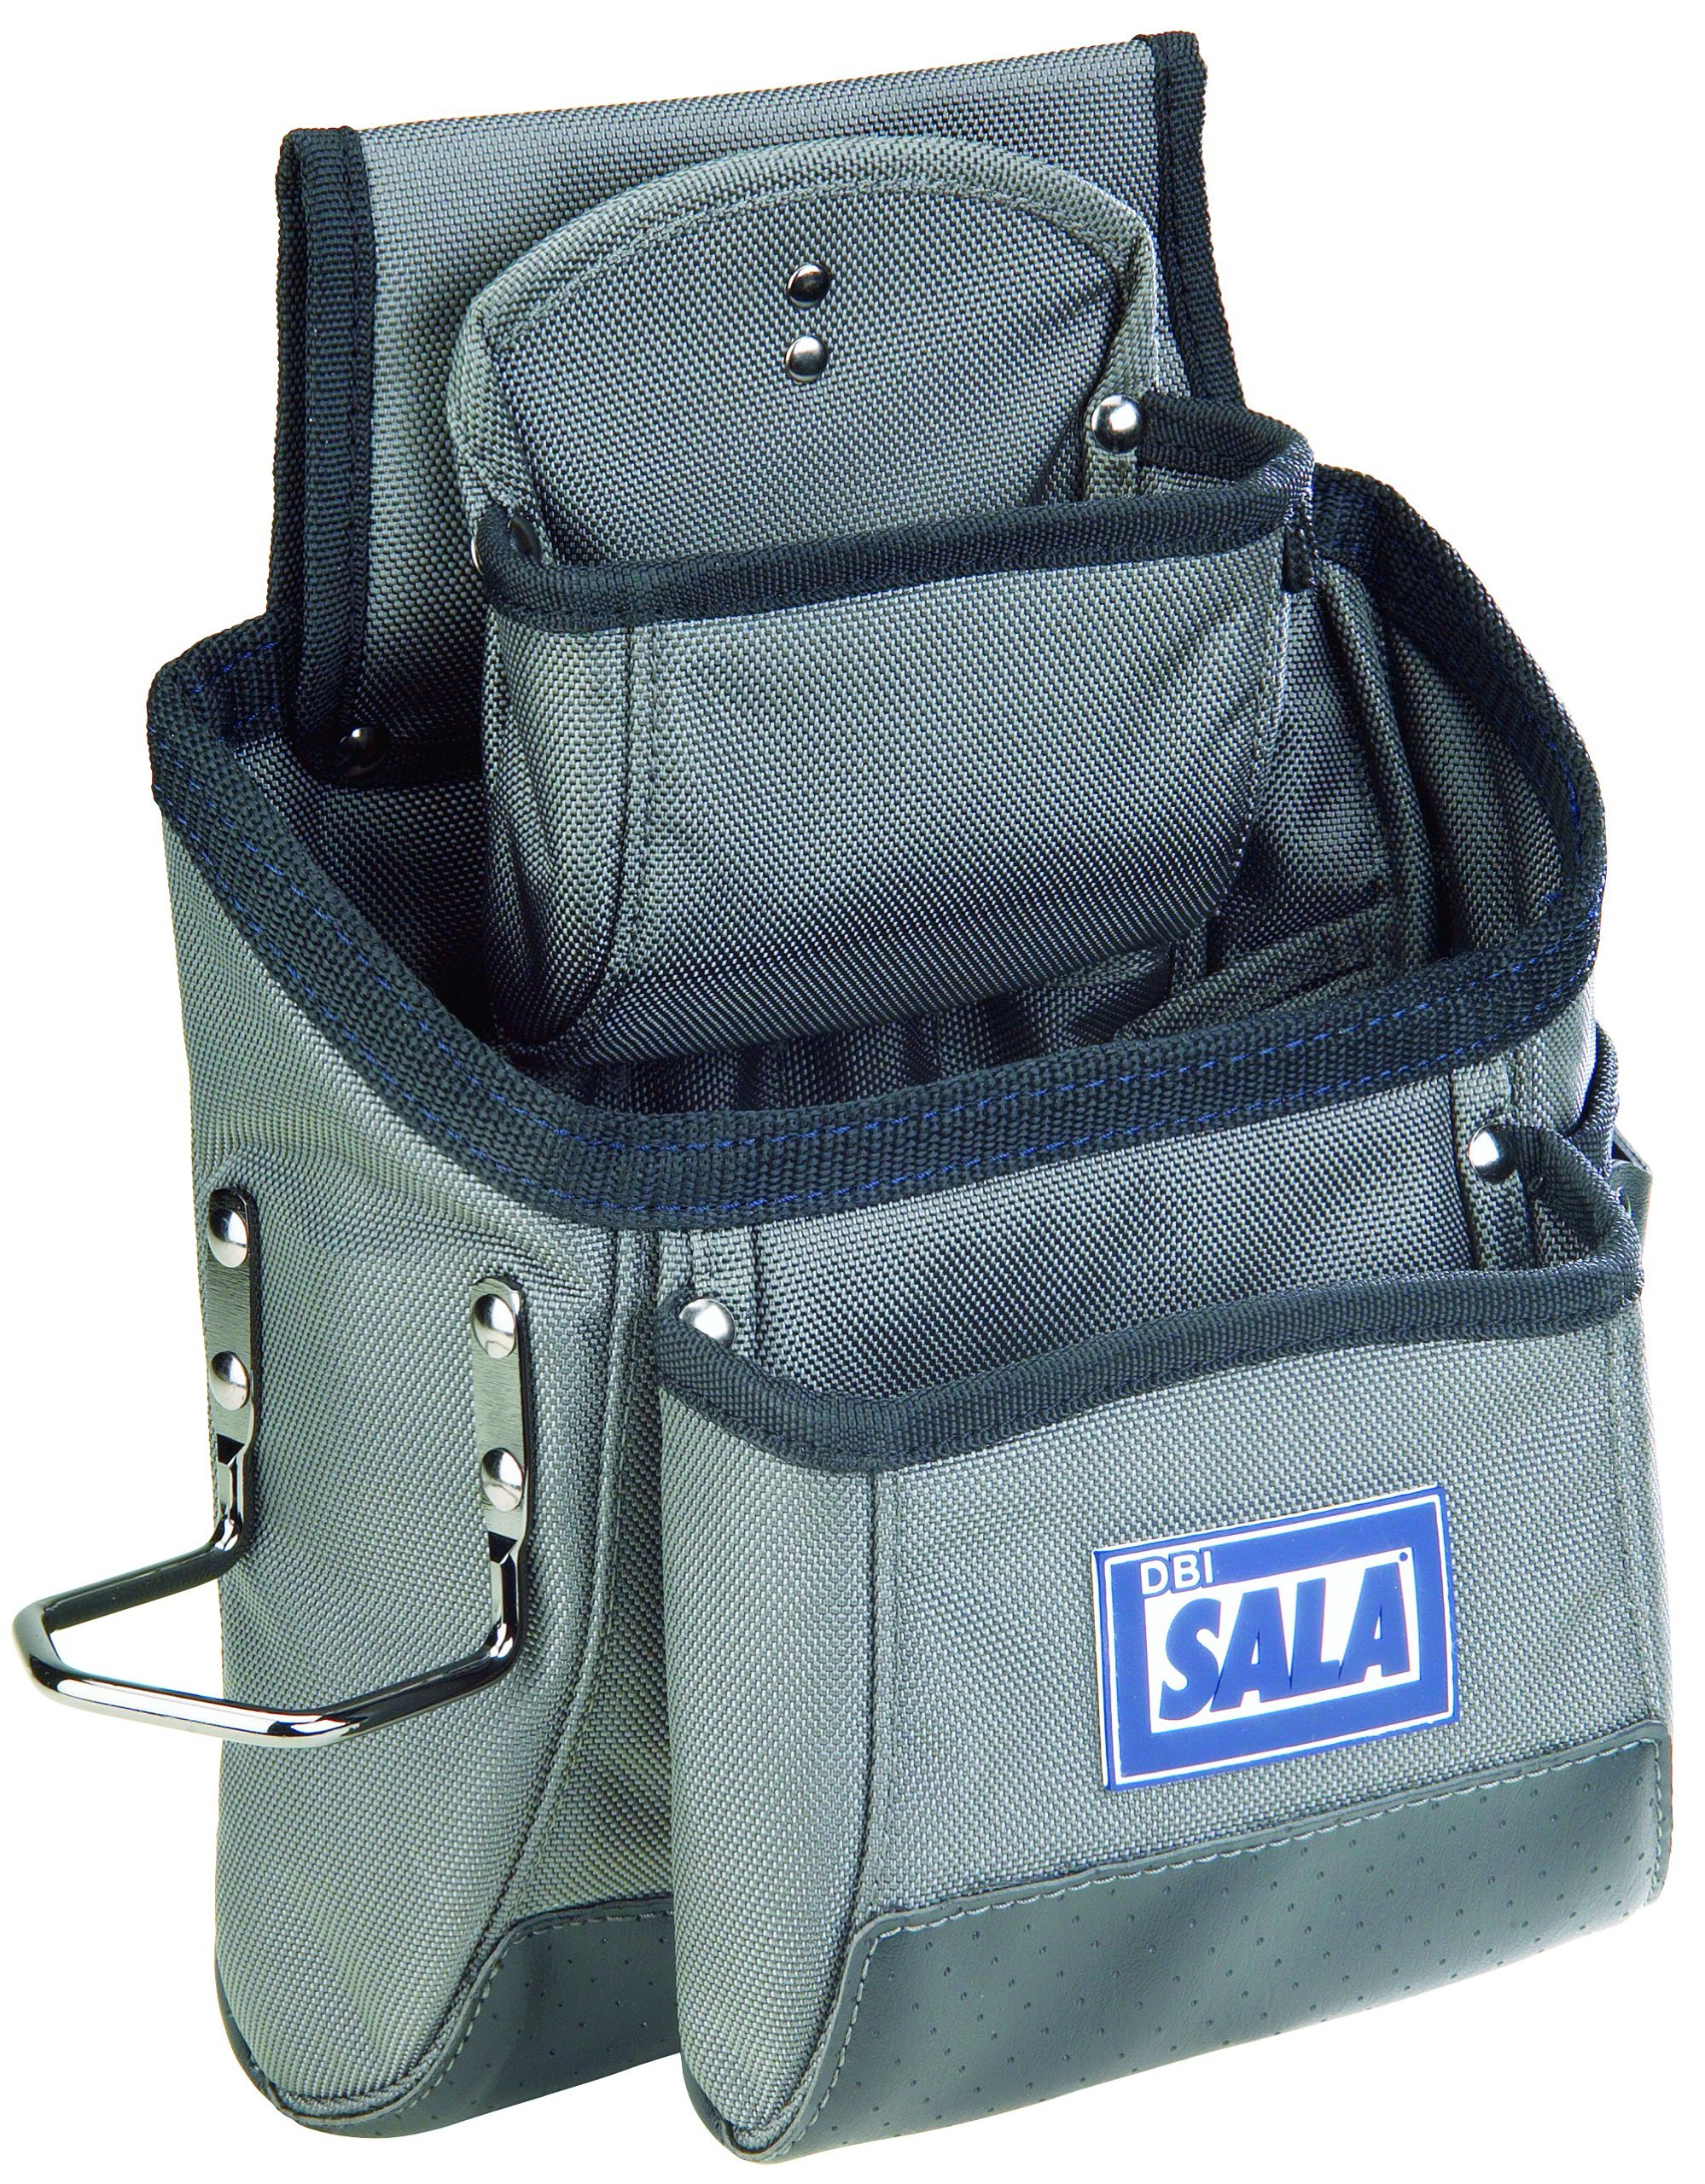 3M DBI-SALA 9504066 11-Pocket Tool and Equipment Pouch, Blue/Grey by 3M Personal Protective Equipment